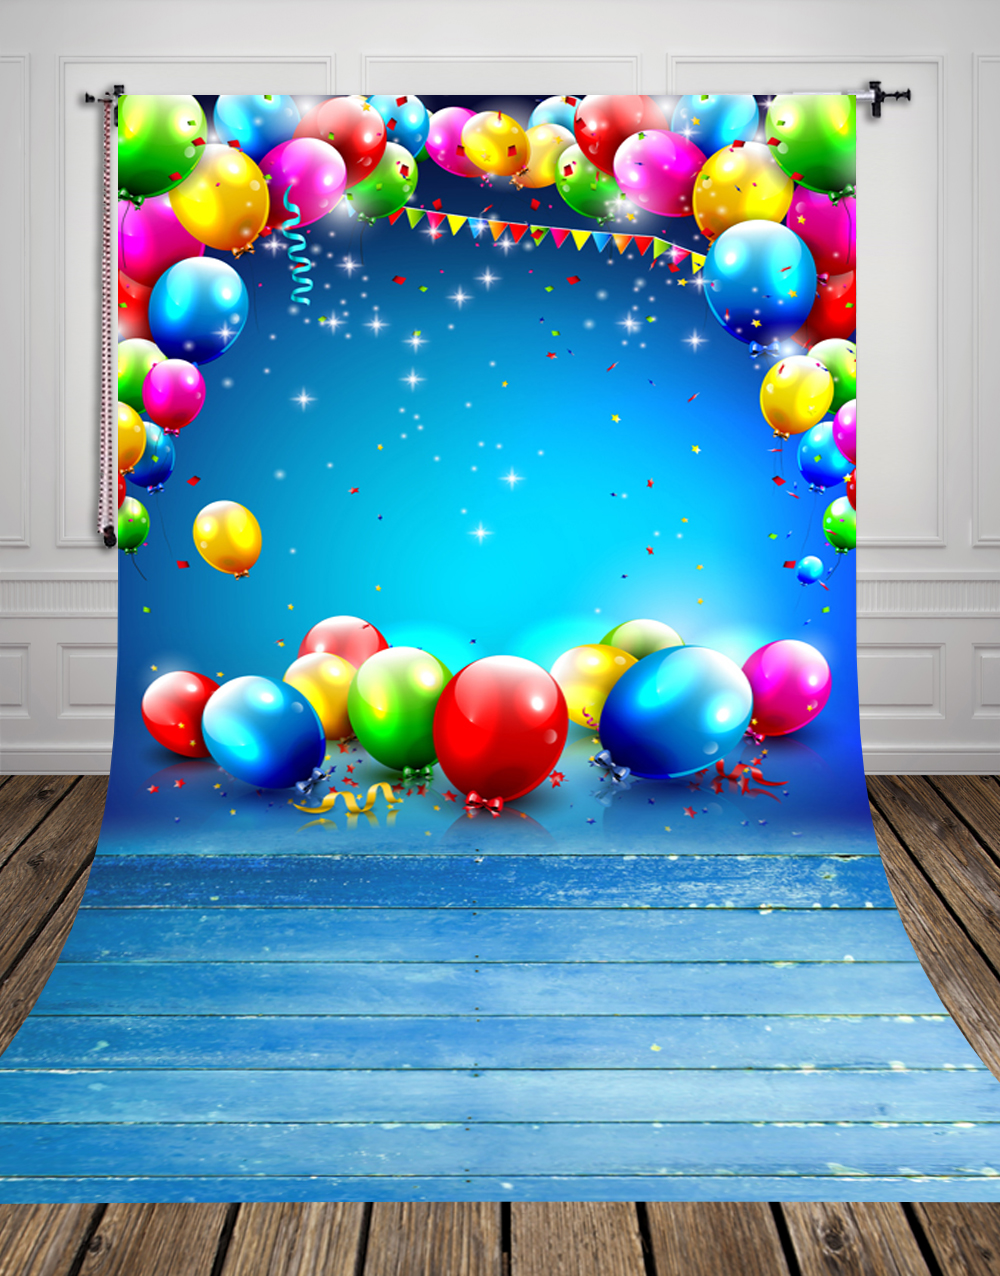 fantastic balloon printed festival backdrops for baby photo Thin vinyl newborn backdrop for studio photography background